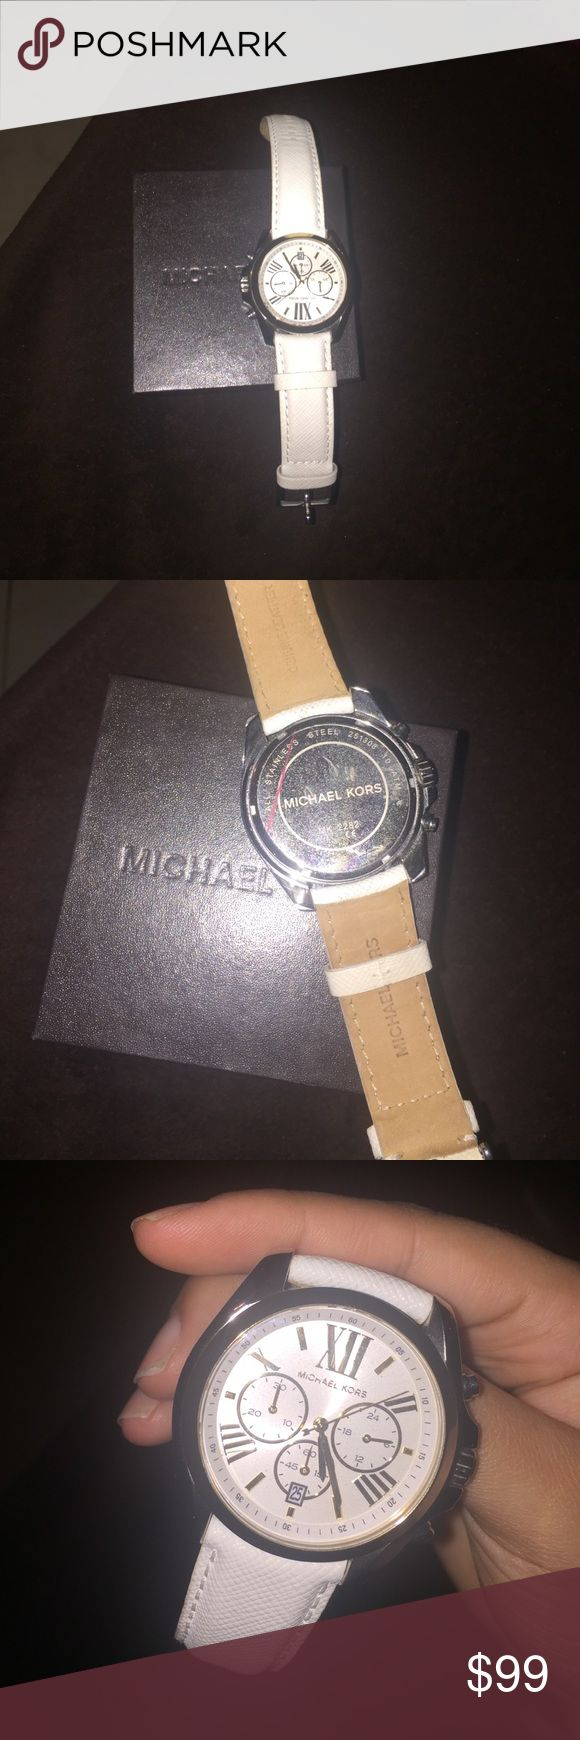 White Michael Kors watch. Very good conditions. Michael Kors Accessories Watches